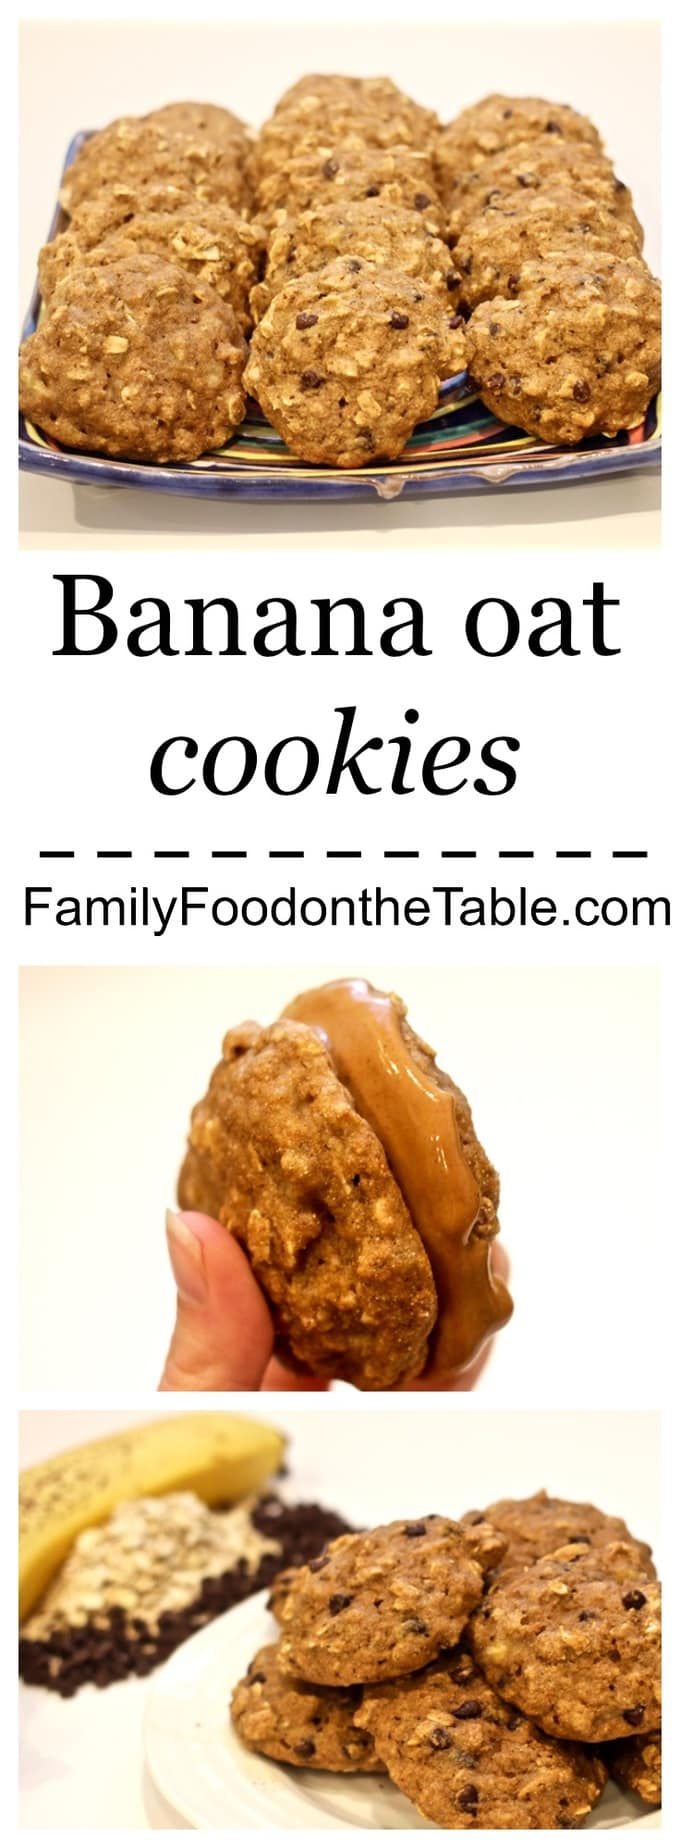 Whole grain banana oat cookies, naturally sweetened with honey, make a perfect snack any time of day!